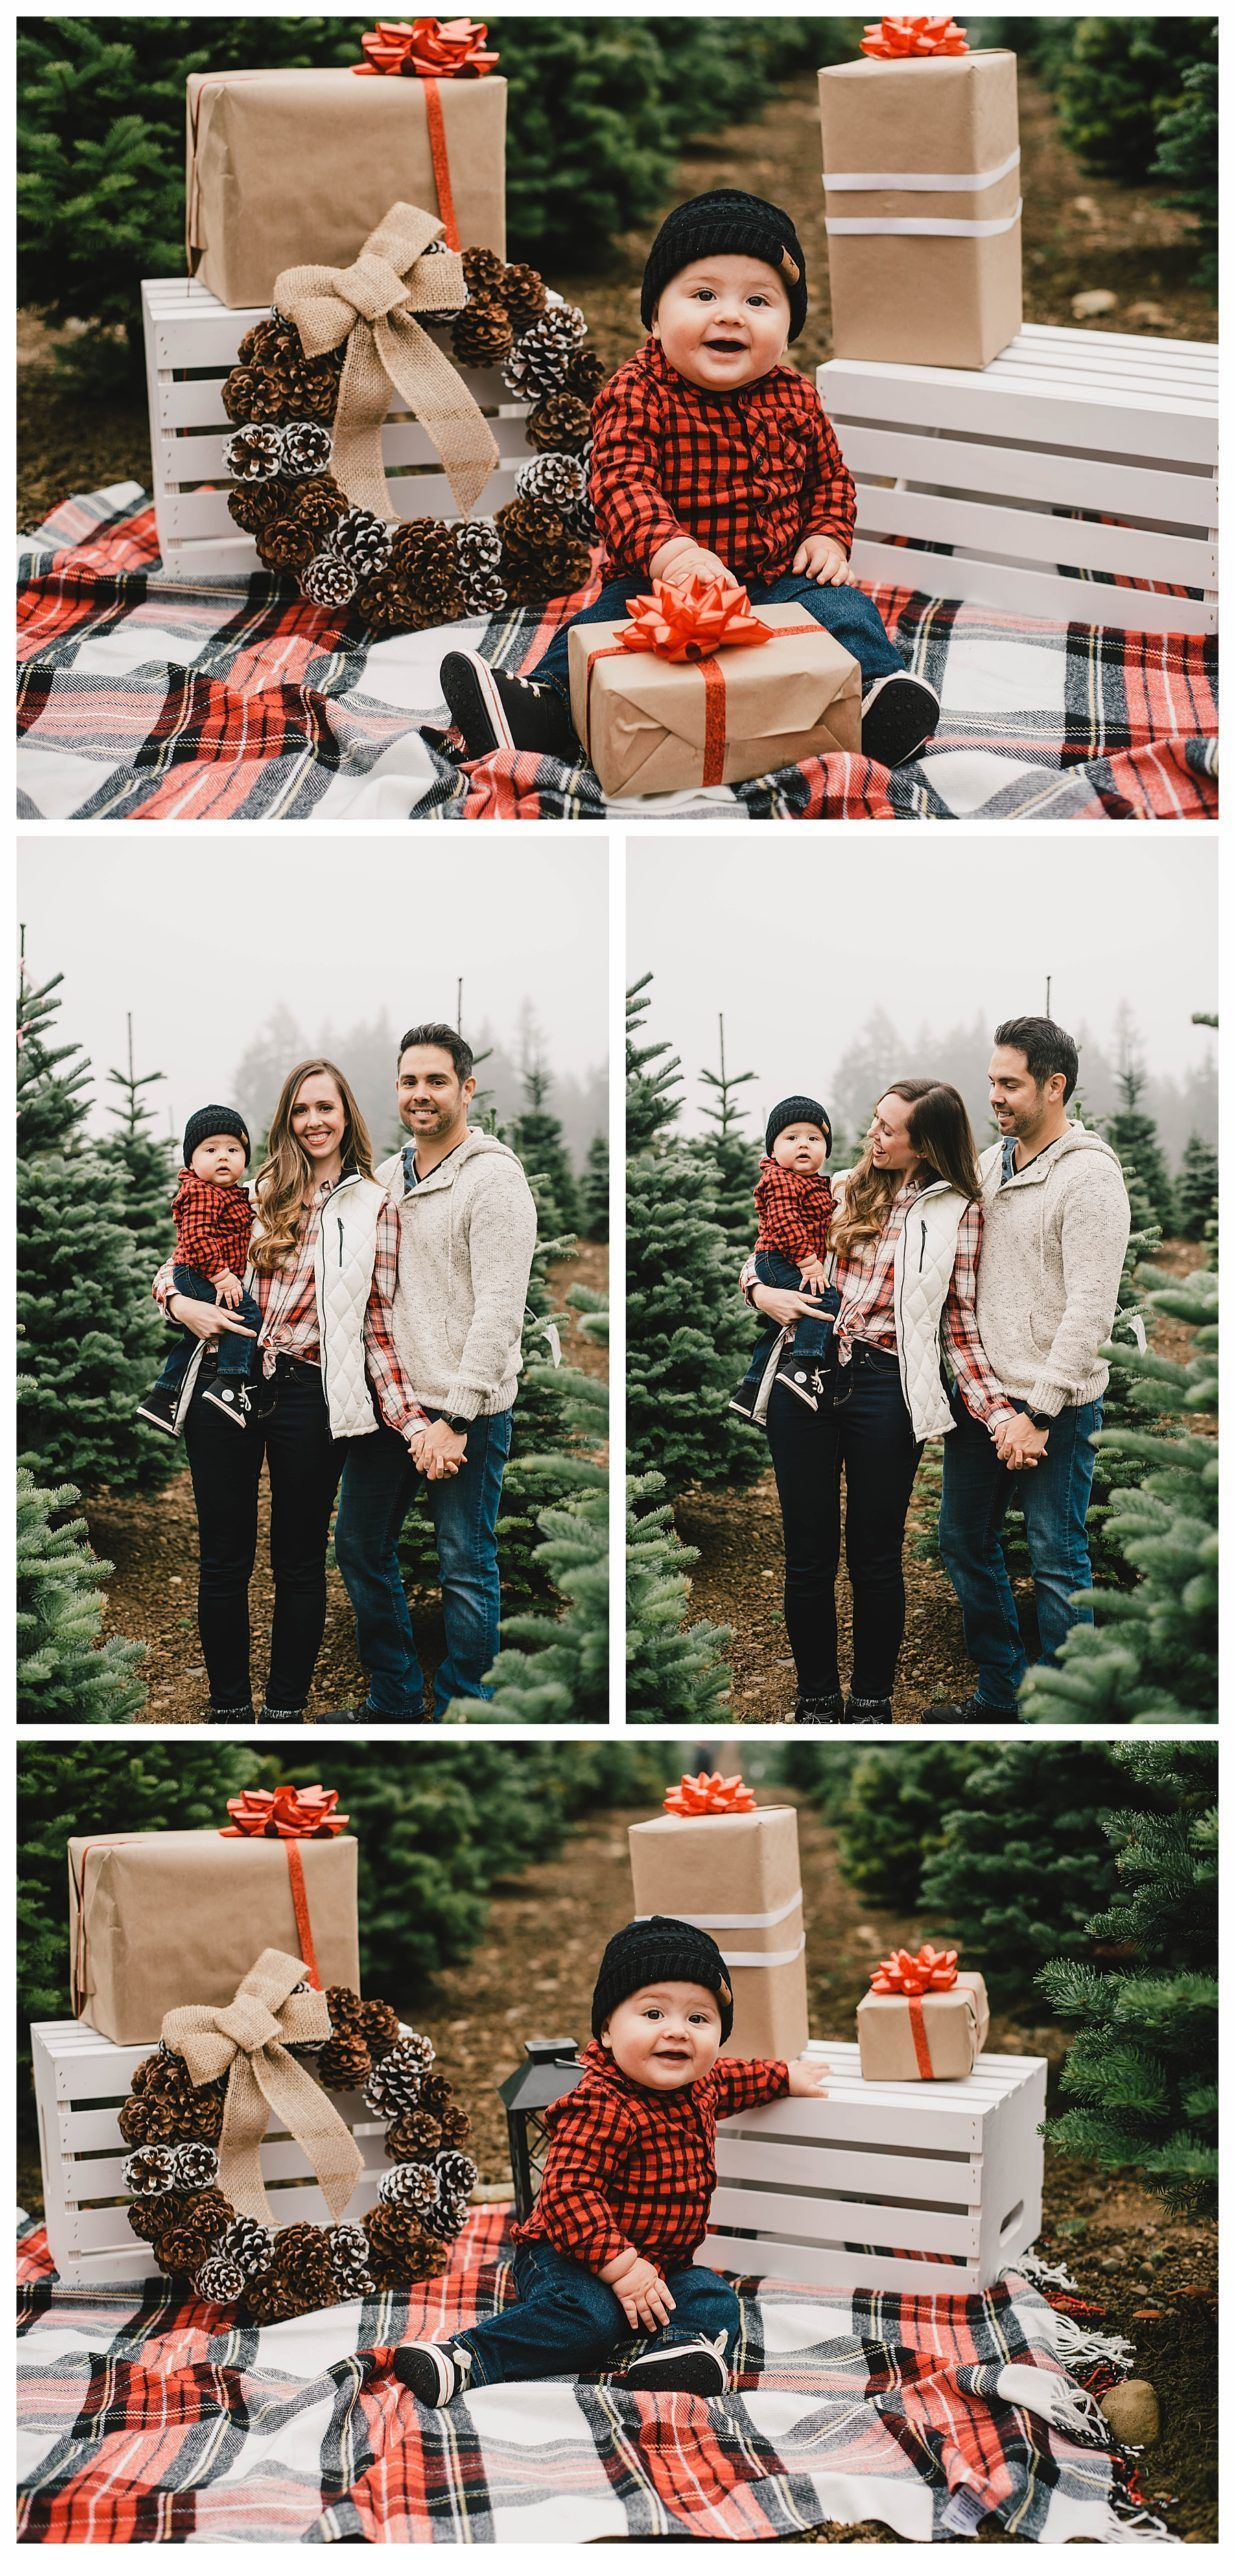 Christmas 2020 Kitsap Kitsap County Couple Photographer | Hubert's Christmas Trees